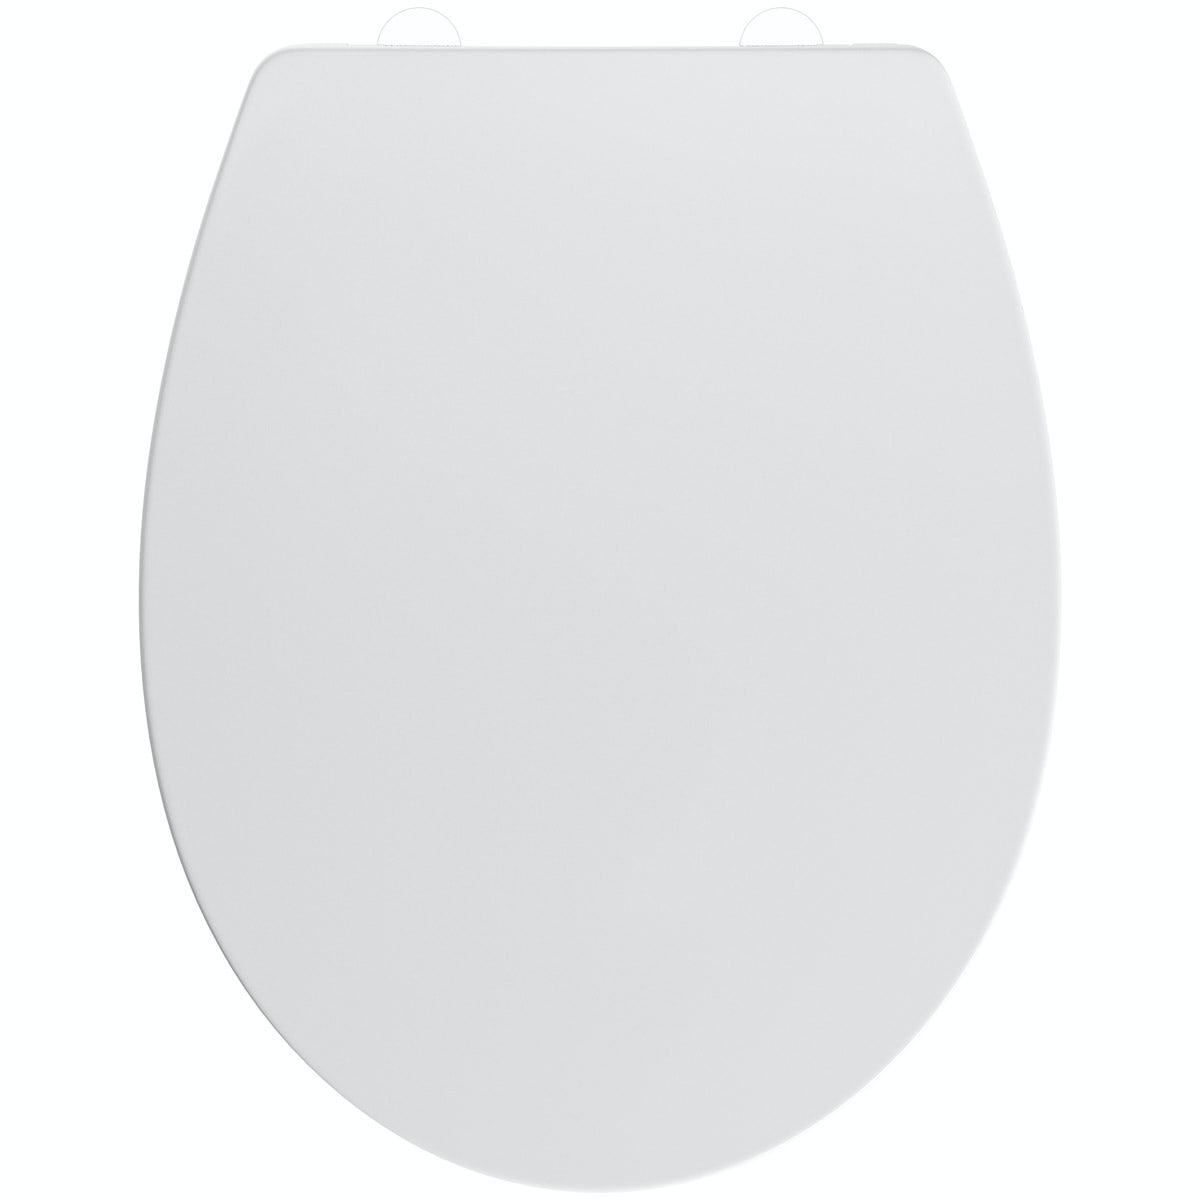 Slim universal thermoset toilet seat with stainless steel hinge